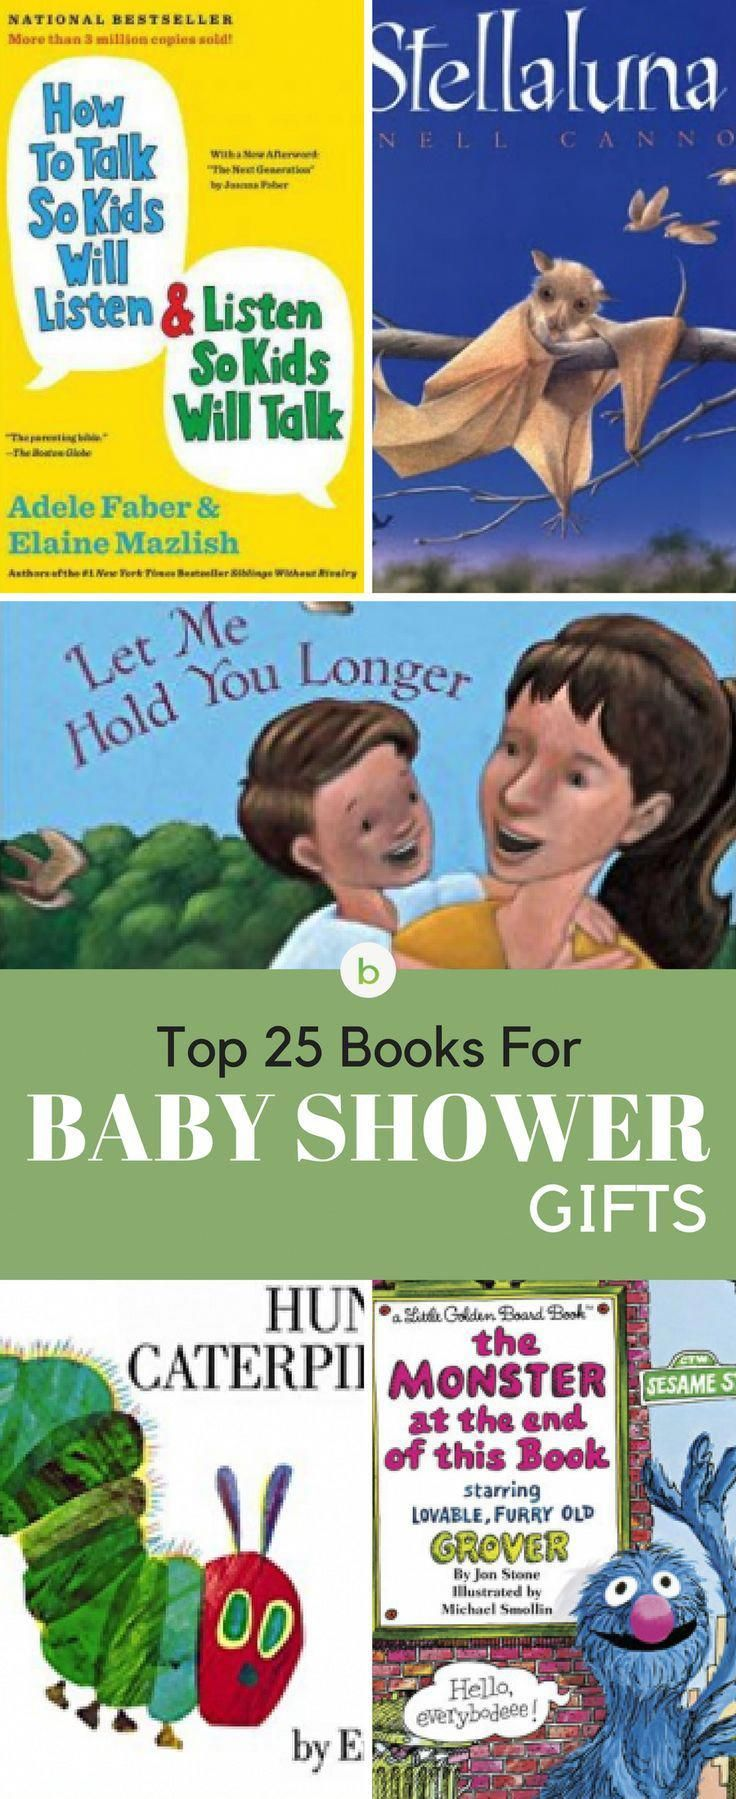 Books Are Popular Presents For Expecting Parents But If You Re The